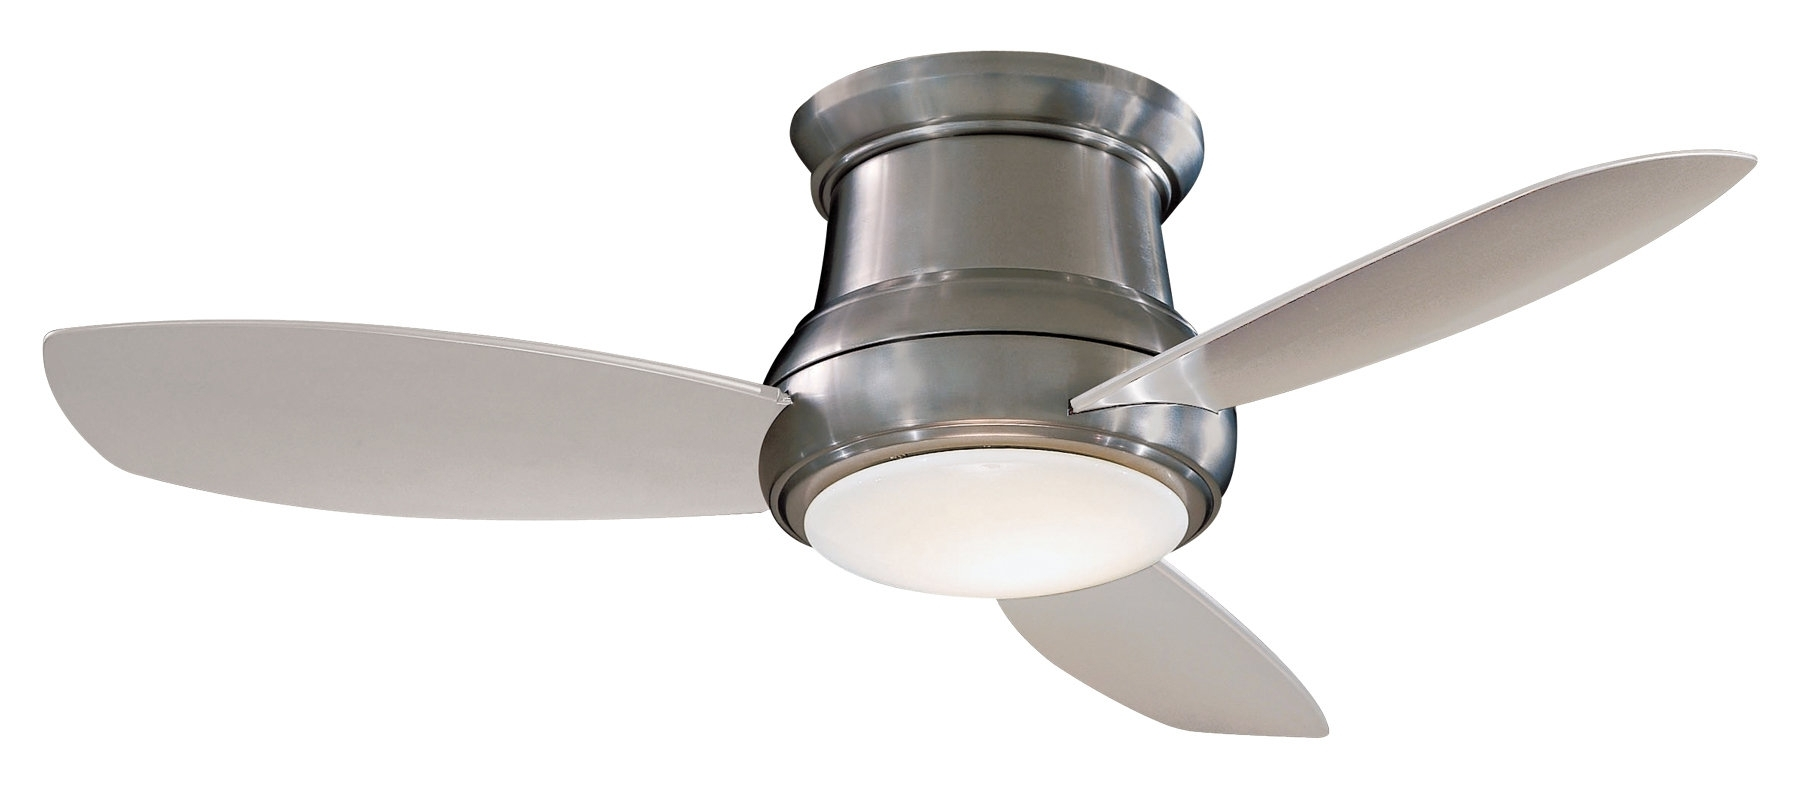 Famous Heavy Duty Outdoor Ceiling Fans Regarding 7 Types Of Ceiling Fans (View 19 of 20)